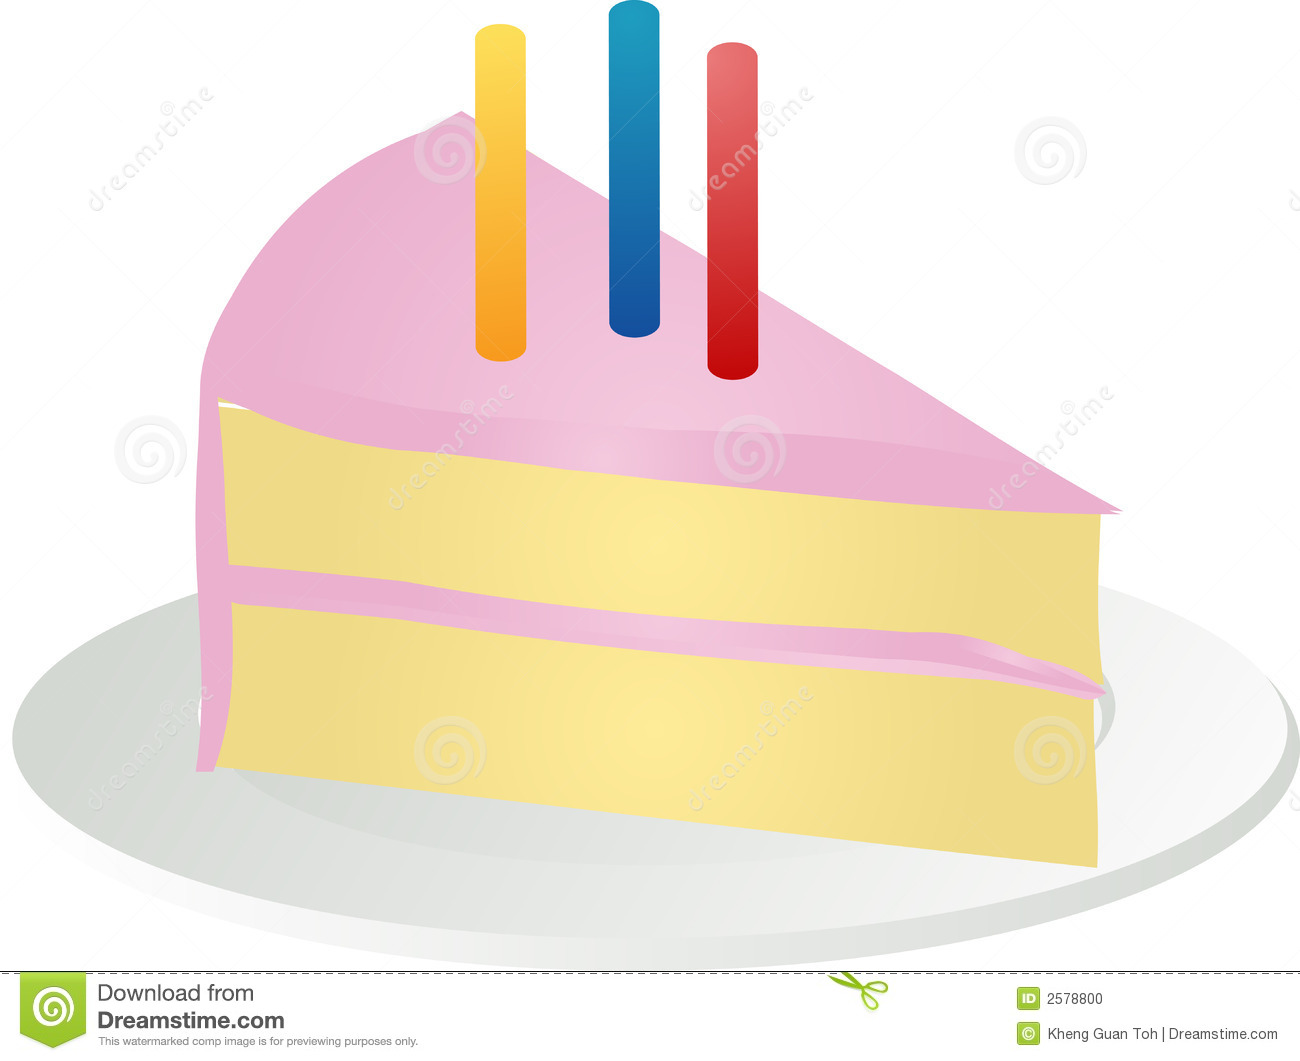 Clipart birthday cake slice vector library library Slice Of Birthday Cake Stock Photo - Image: 2578800 vector library library